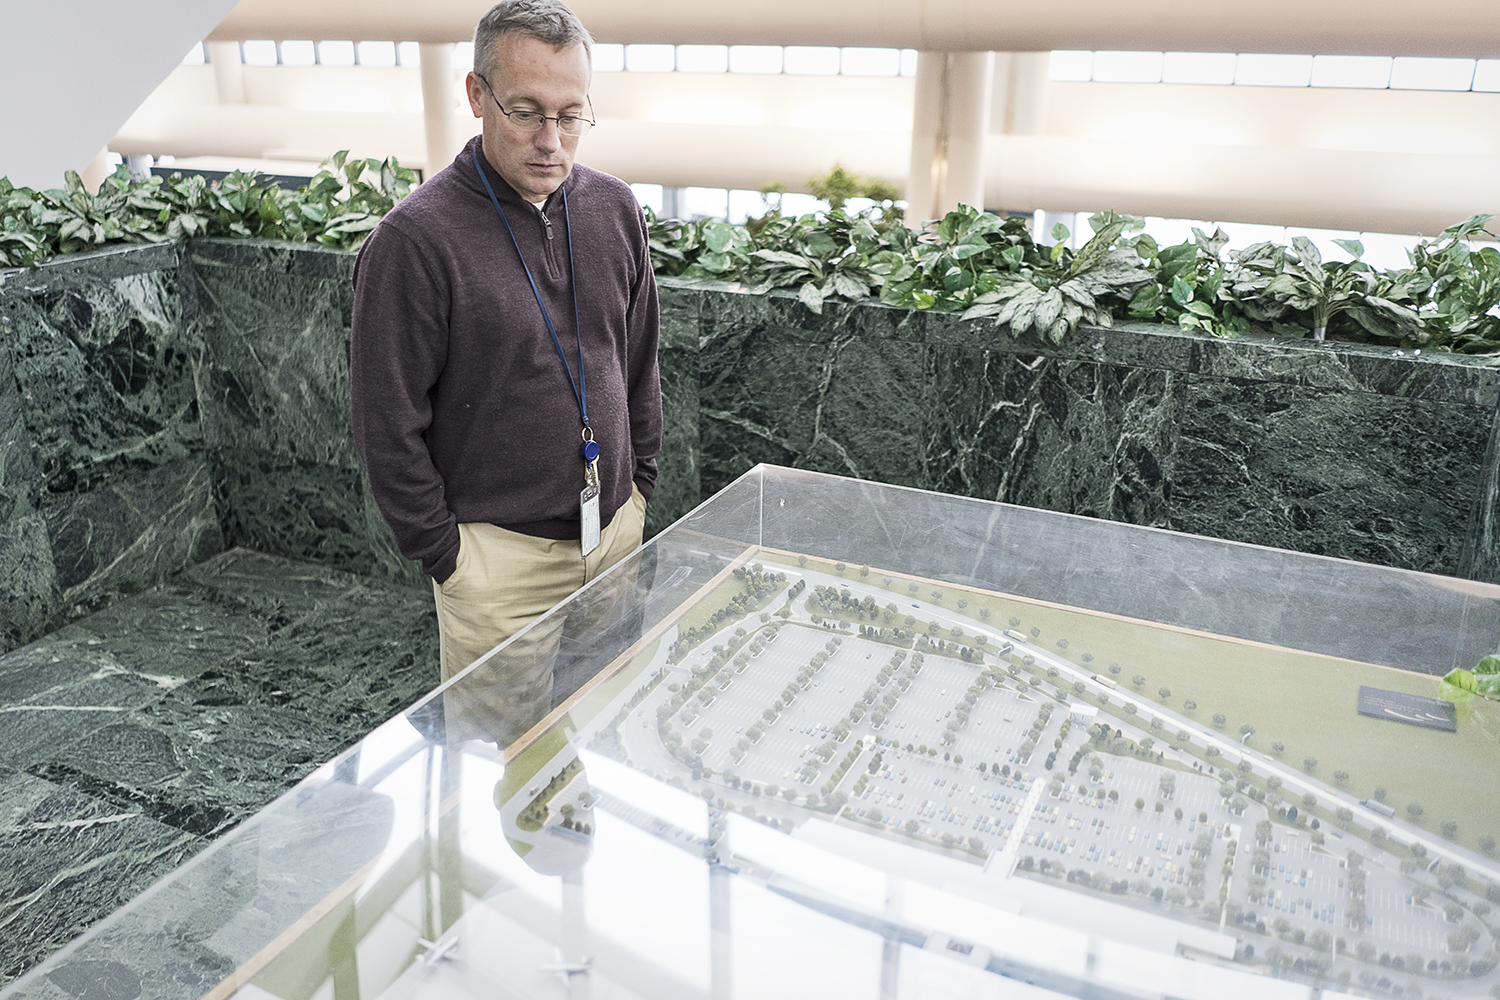 Bishop International Airport Director Craig Williams, 48, of Fenton, looks at the scale model of Bishop as it was envisioned in the early 1990s. Remarkably, the airport has very little variation than the original proposed model.